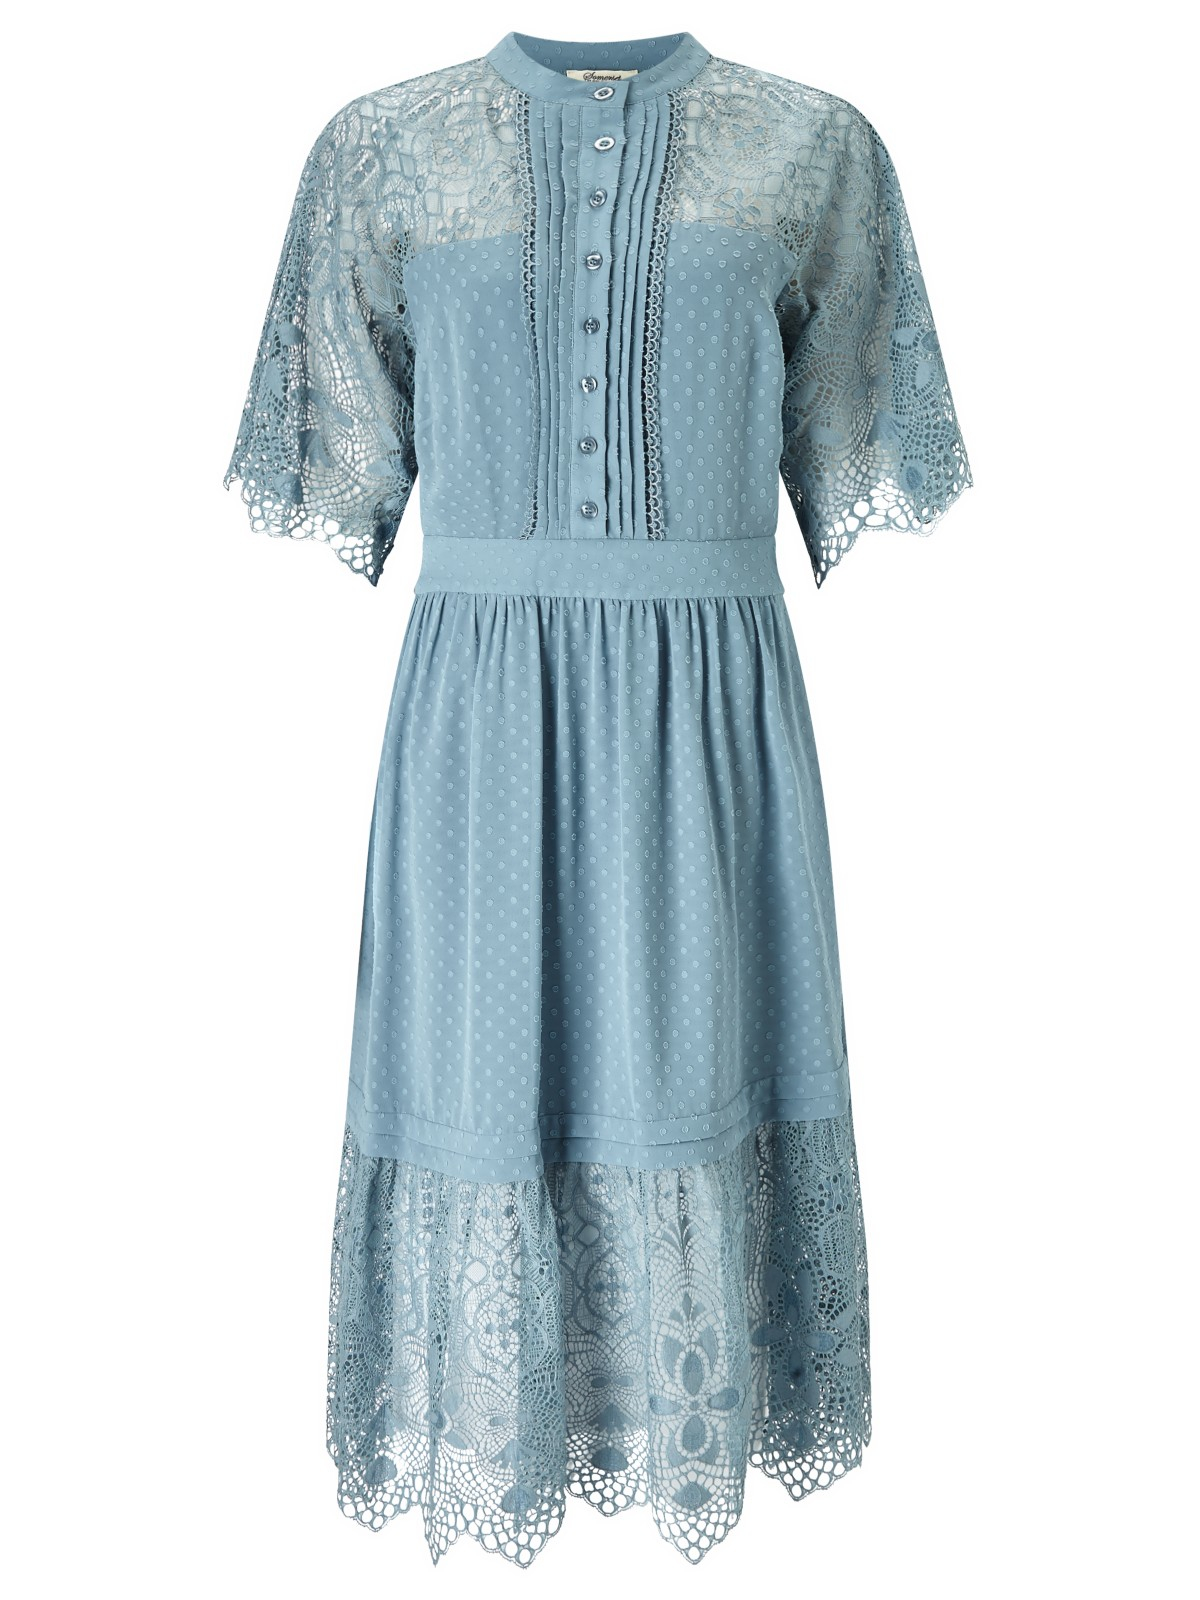 e3e9febb04d Somerset by Alice Temperley Lace And Spot Dress in Blue - Lyst